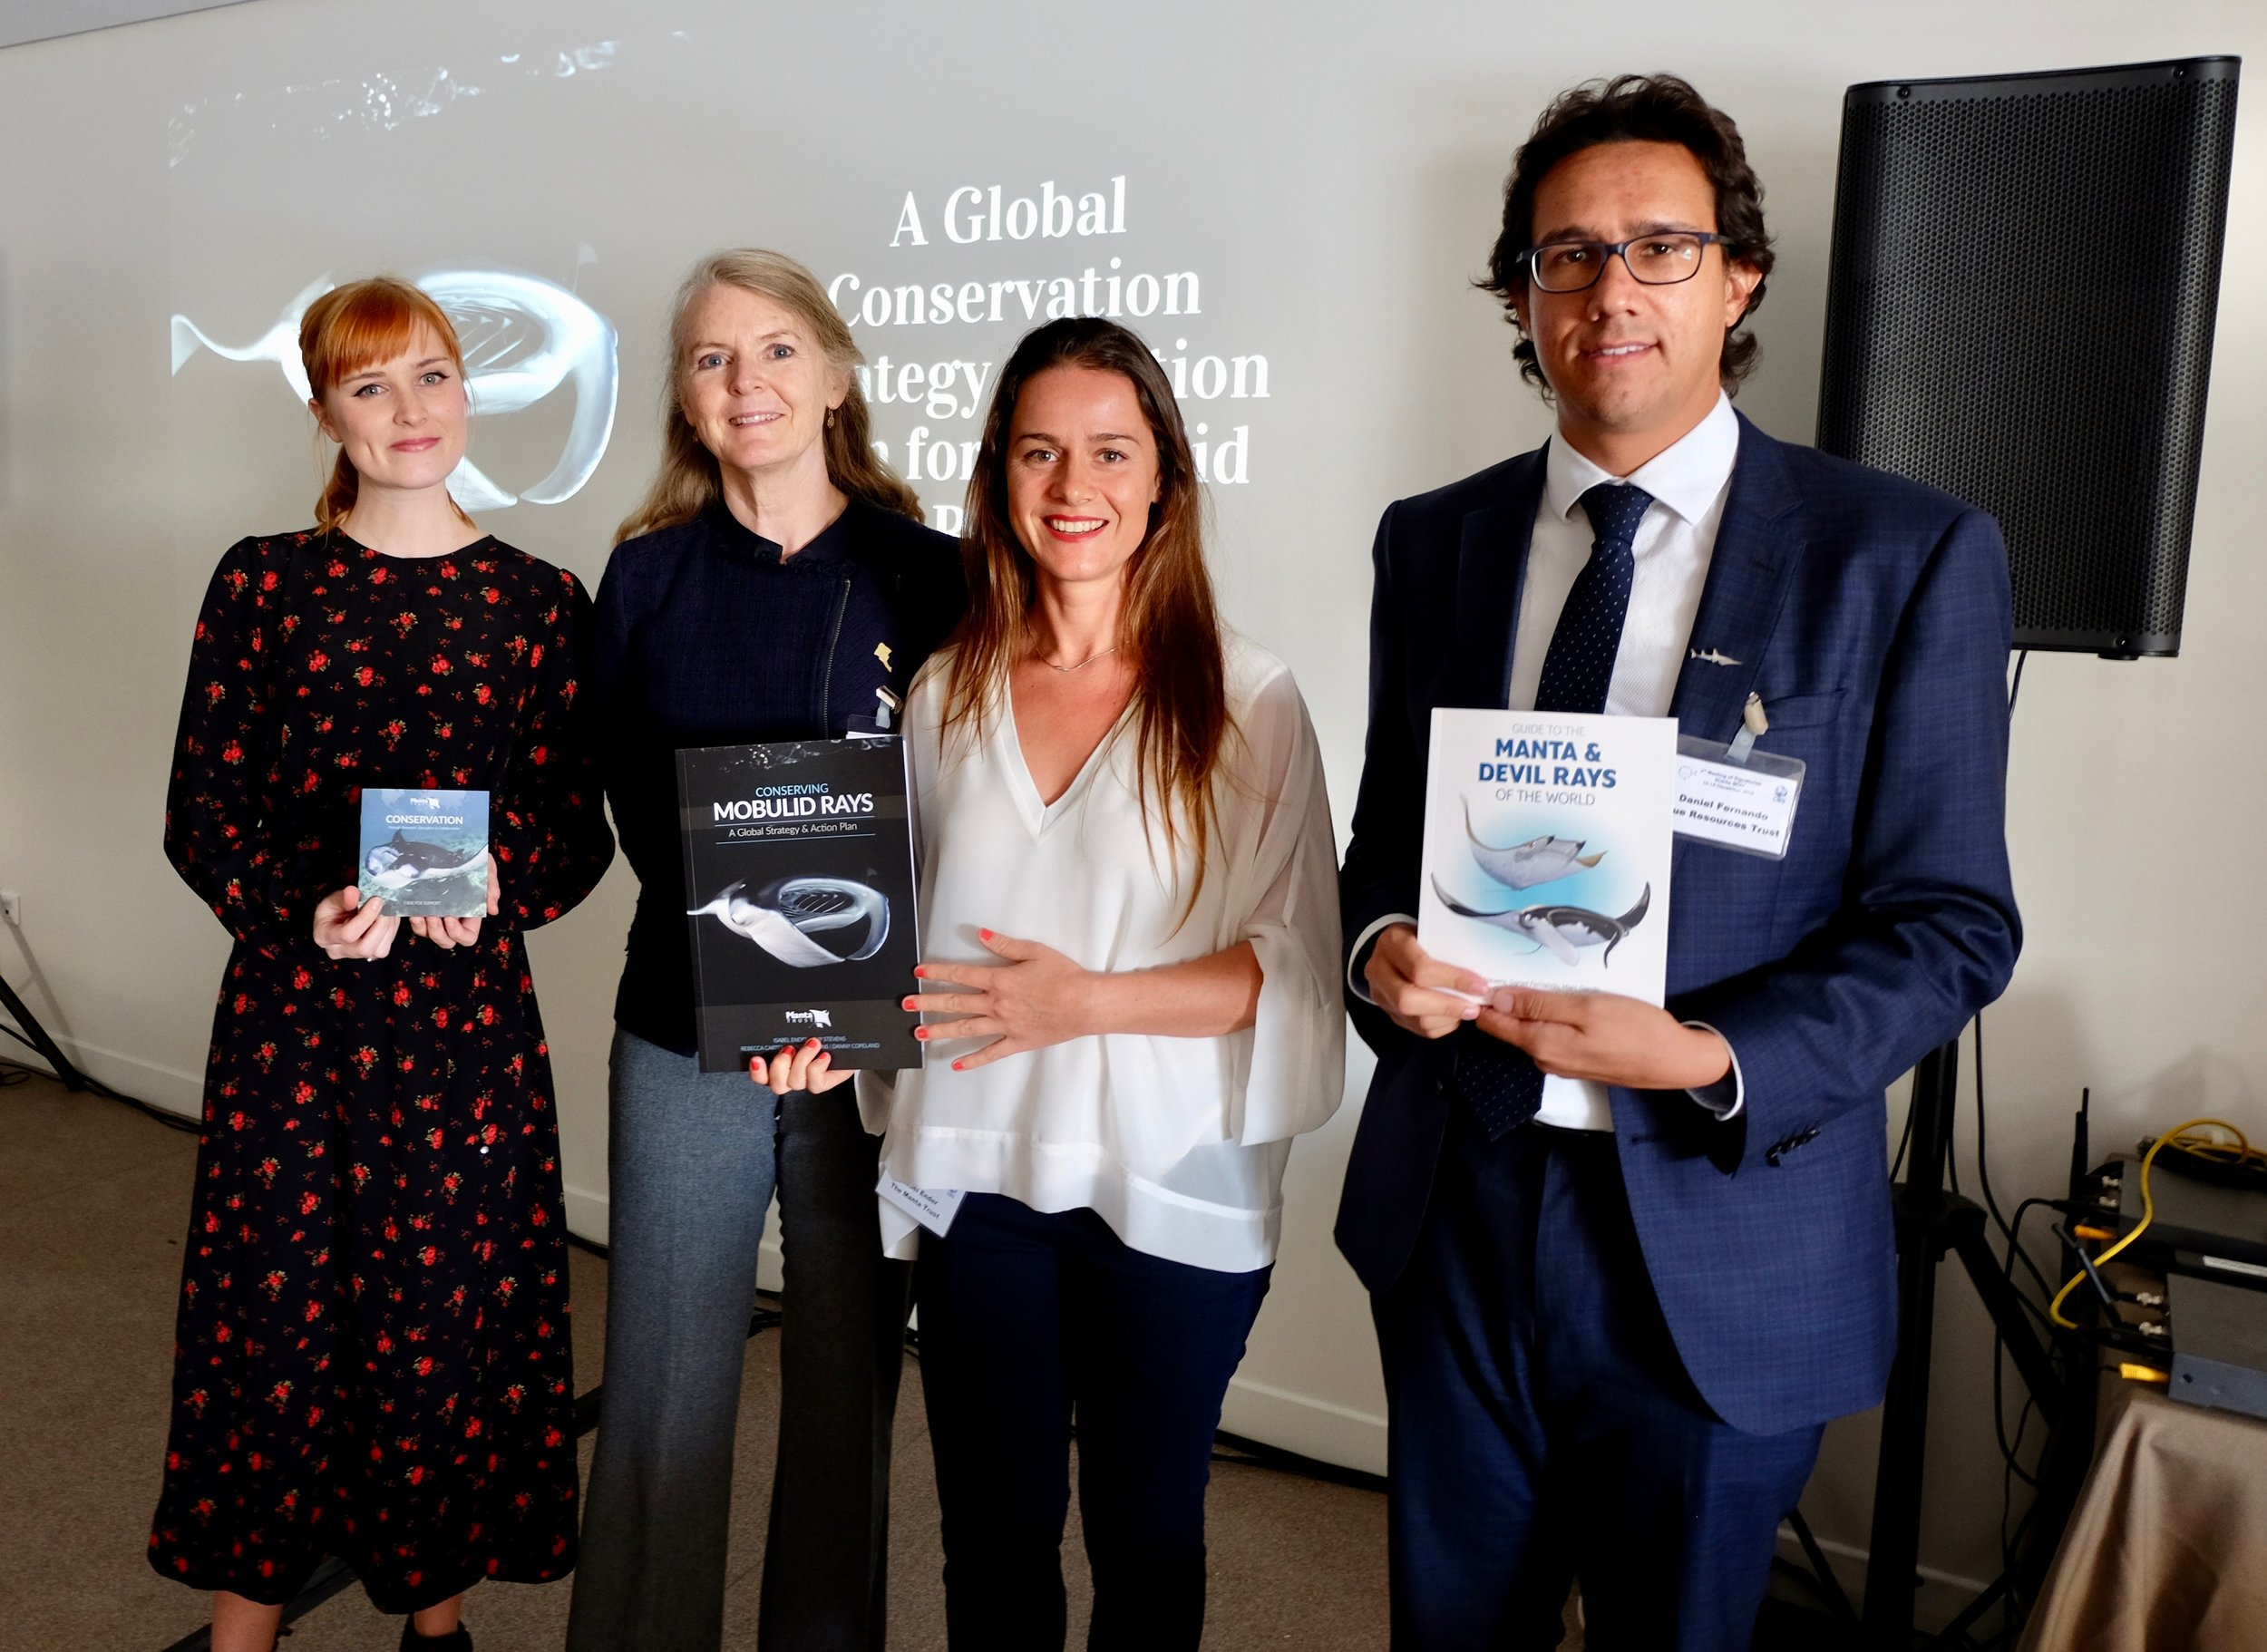 The Manta Trust team at the launch event for our Strategy & Action Plan (from left-right: Bex Carter, Sarah Fowler, Isabel Ender, Daniel Fernando).